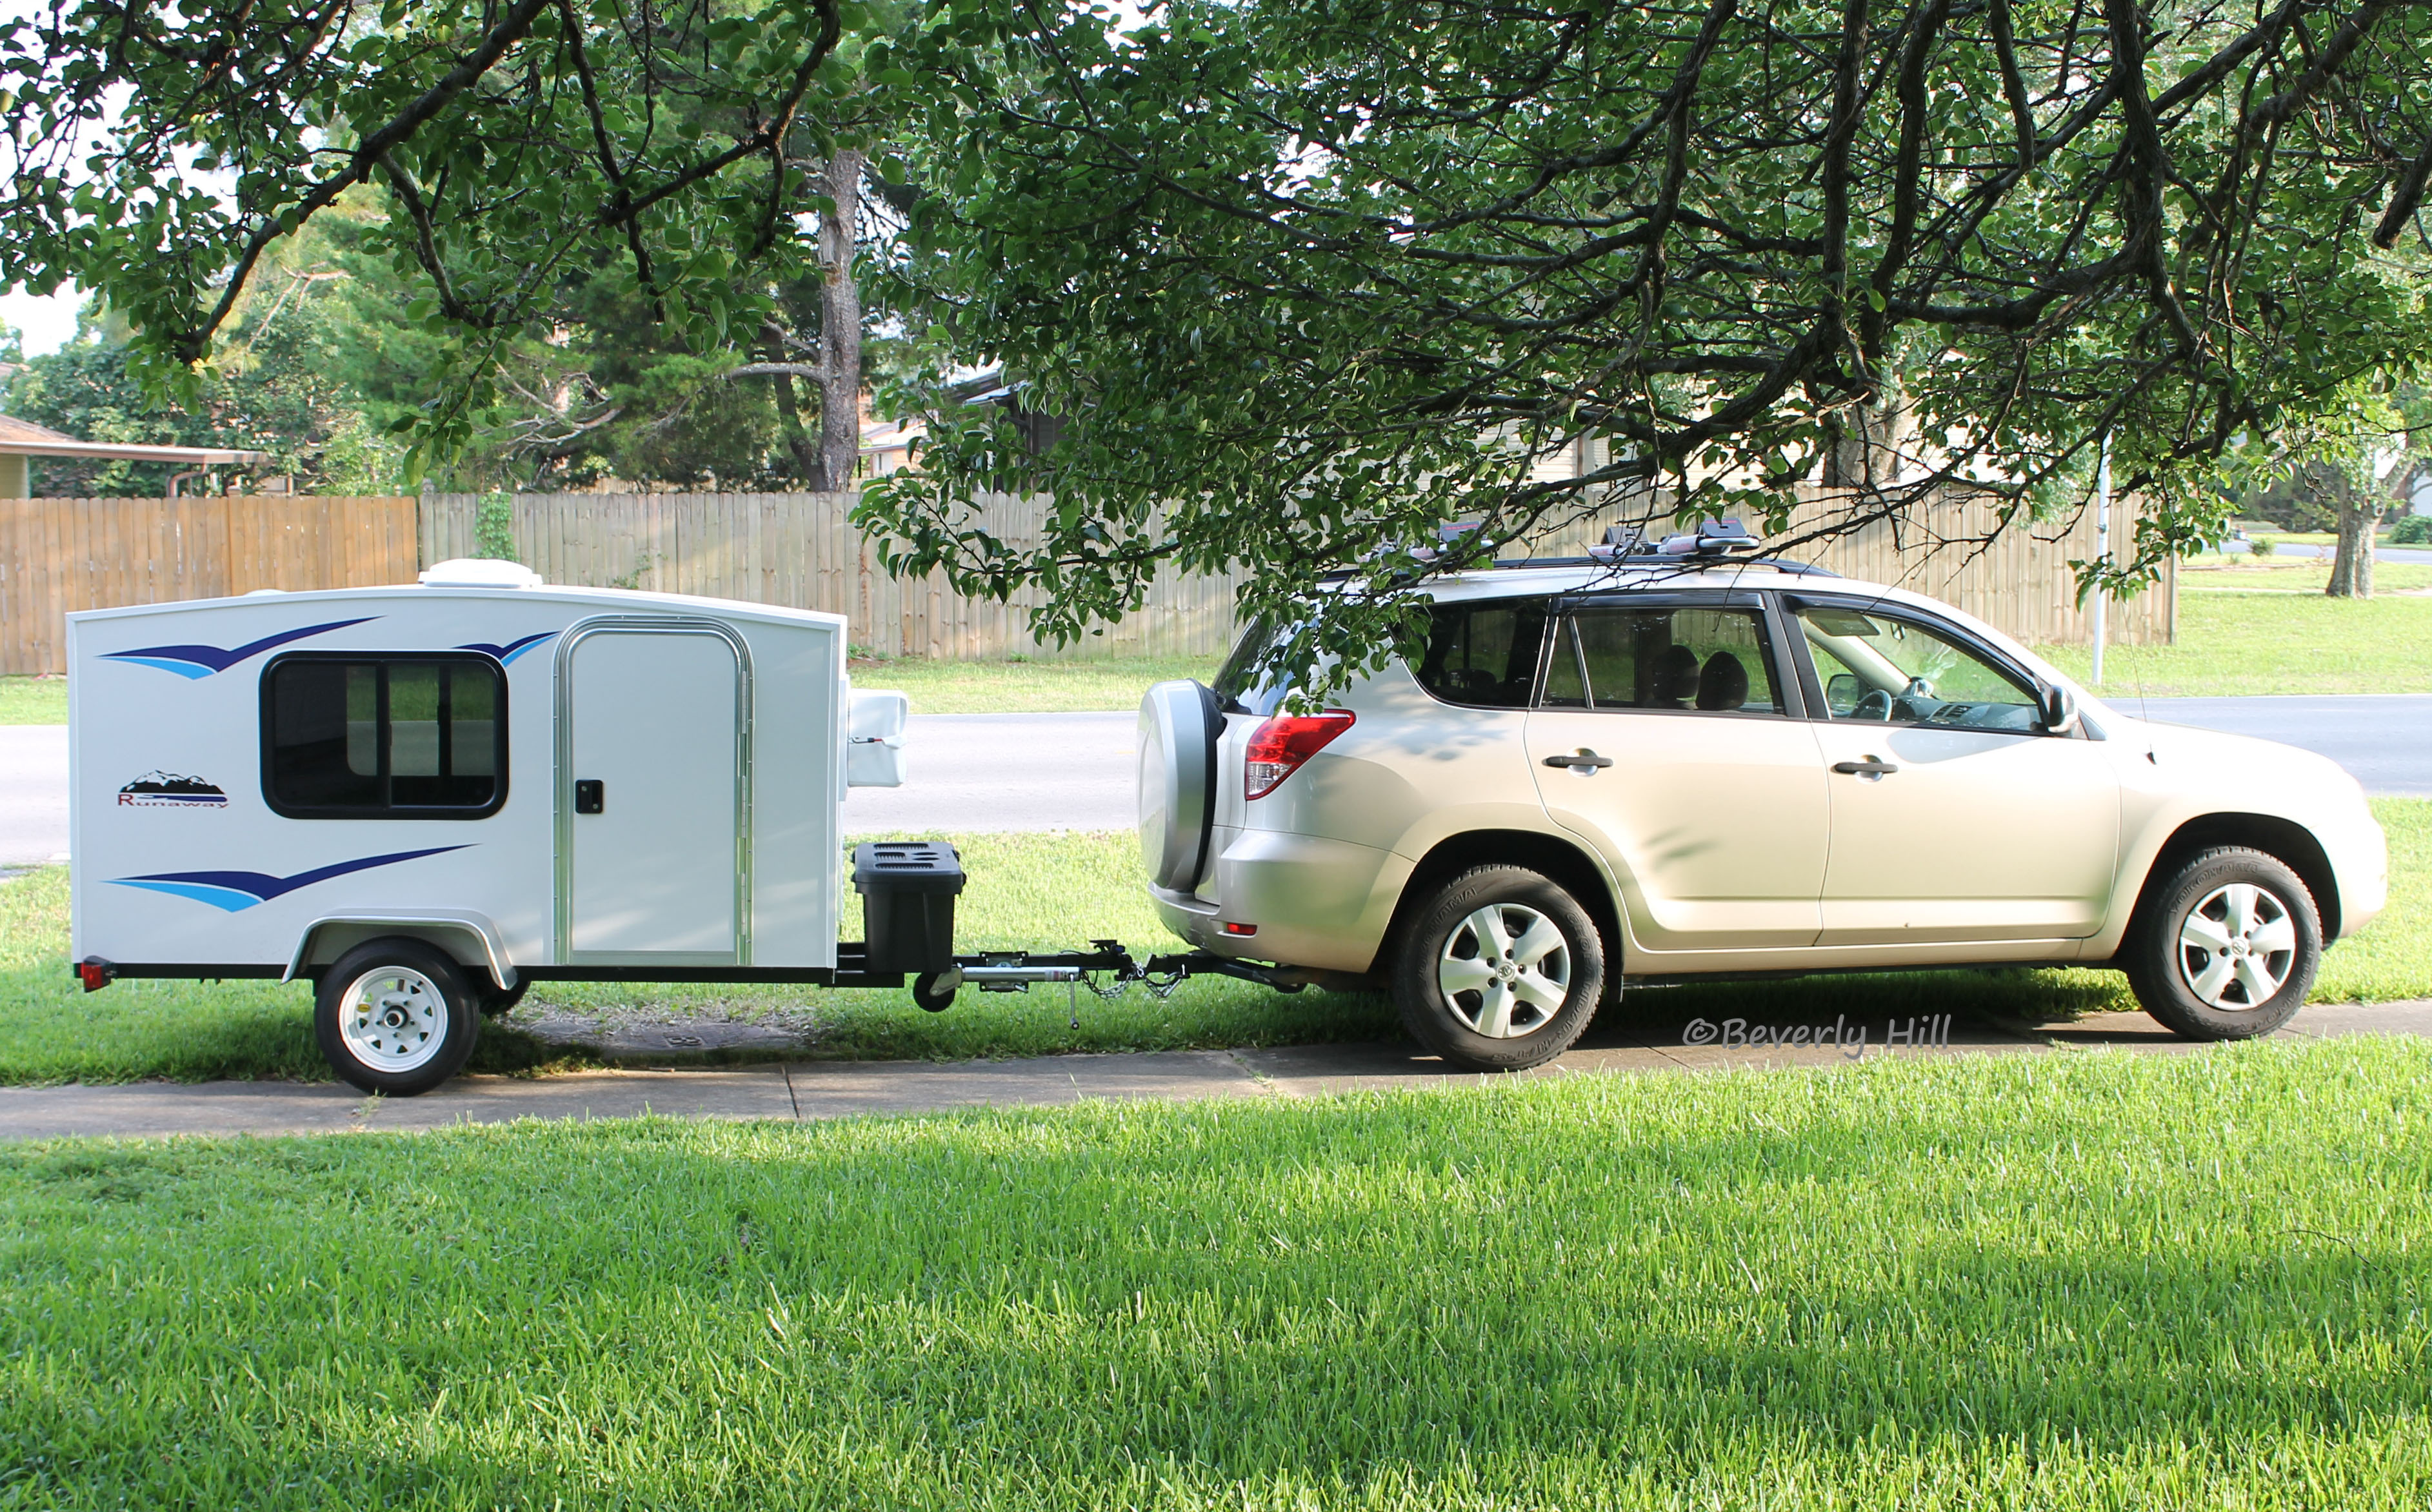 Wonderful Light Travel Trailers Travel Trailers And Trailers On Pinterest